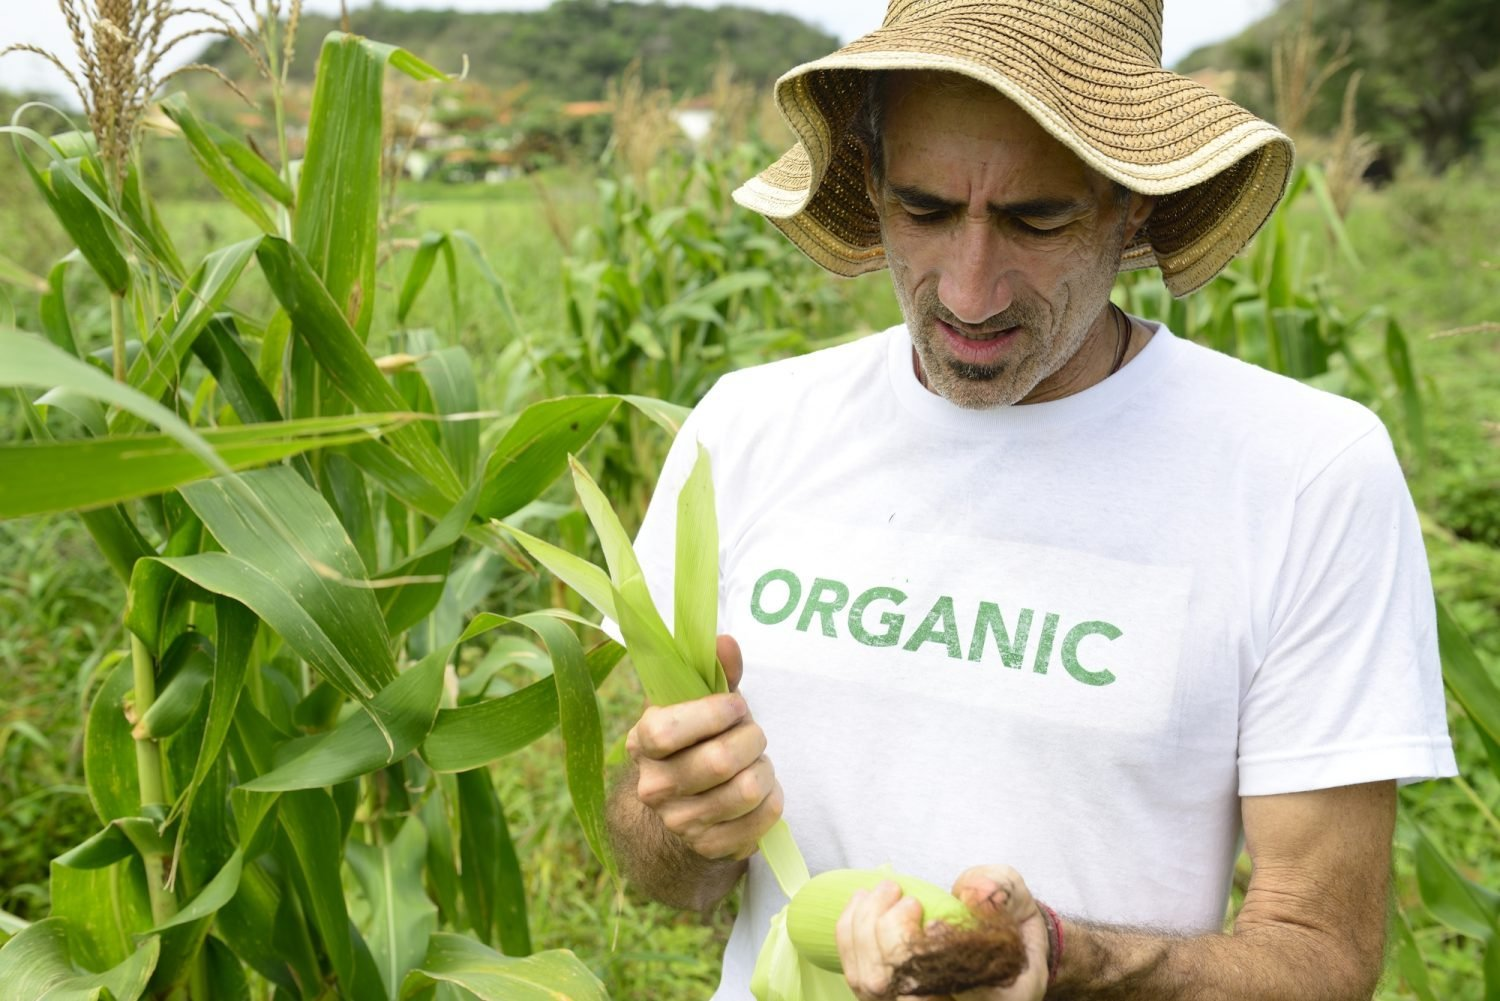 Organic t-shirt on farmer in field